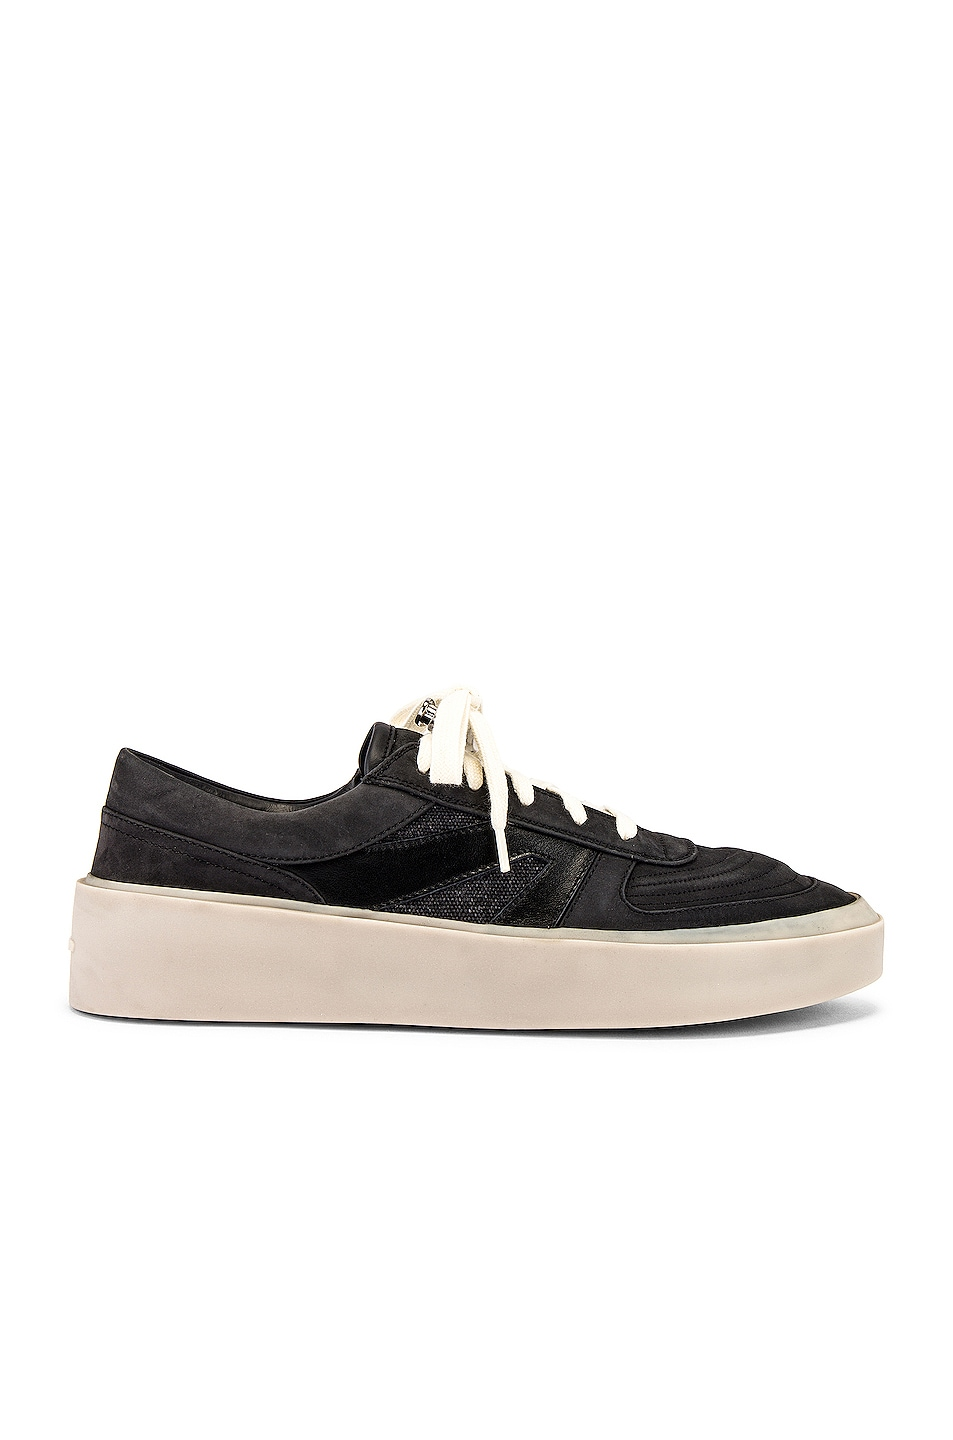 Image 2 of Fear of God Strapless Skate Mid in Black & Grey Gum Sole